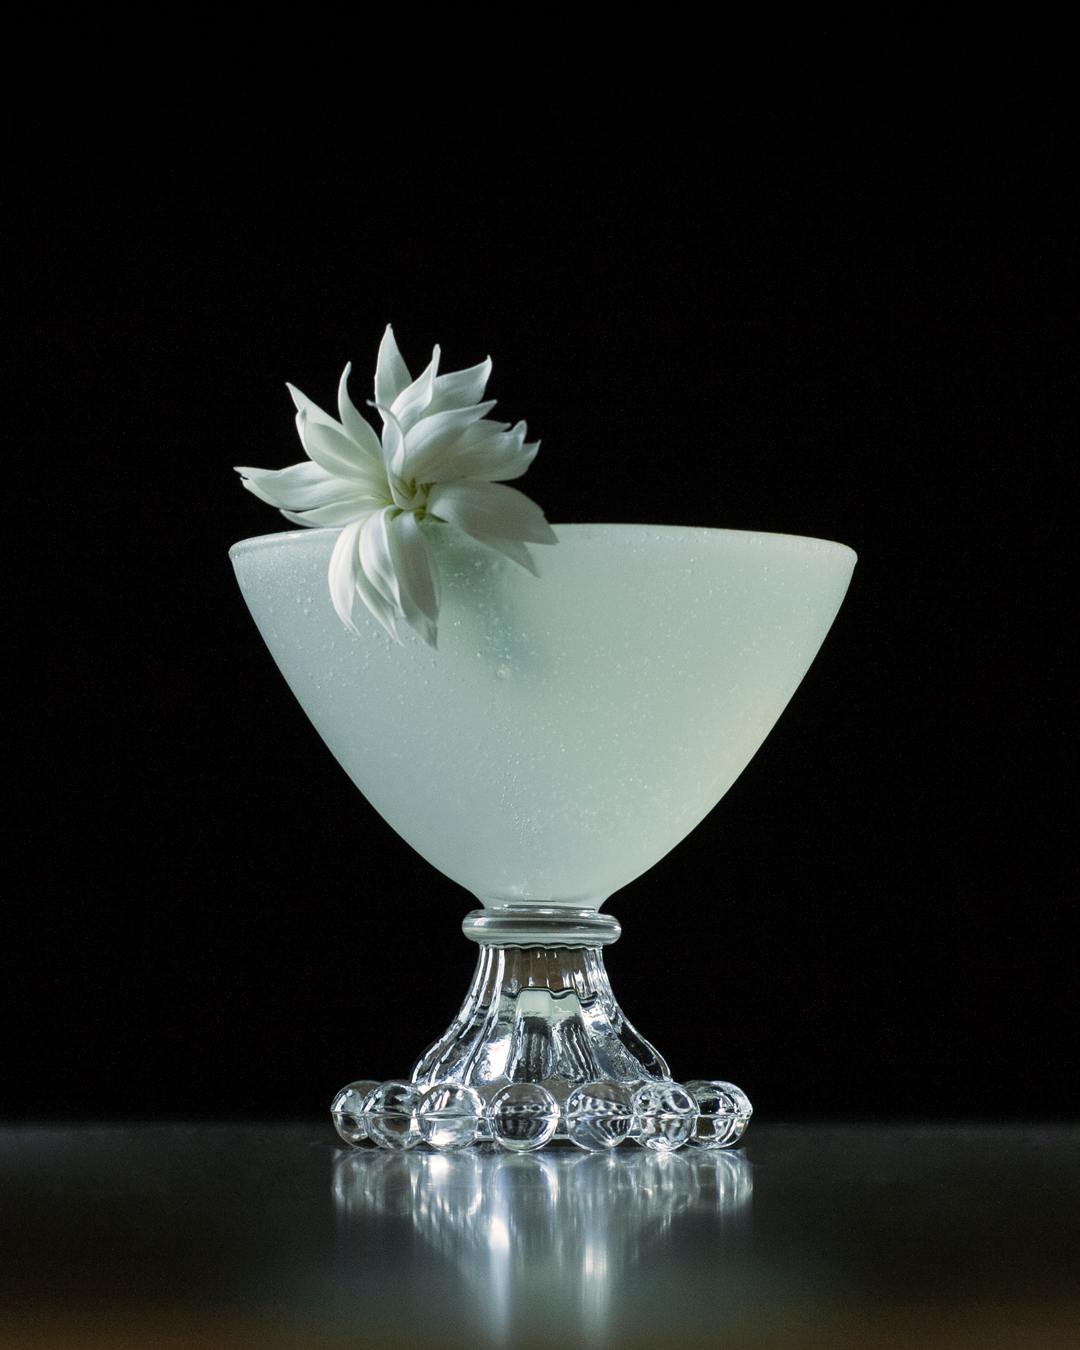 Perhaps my most favorite cocktail photograph, a Coconut Daiquiri garnished with a simple, yet strikingly beautiful Bridal White Star dianthus.